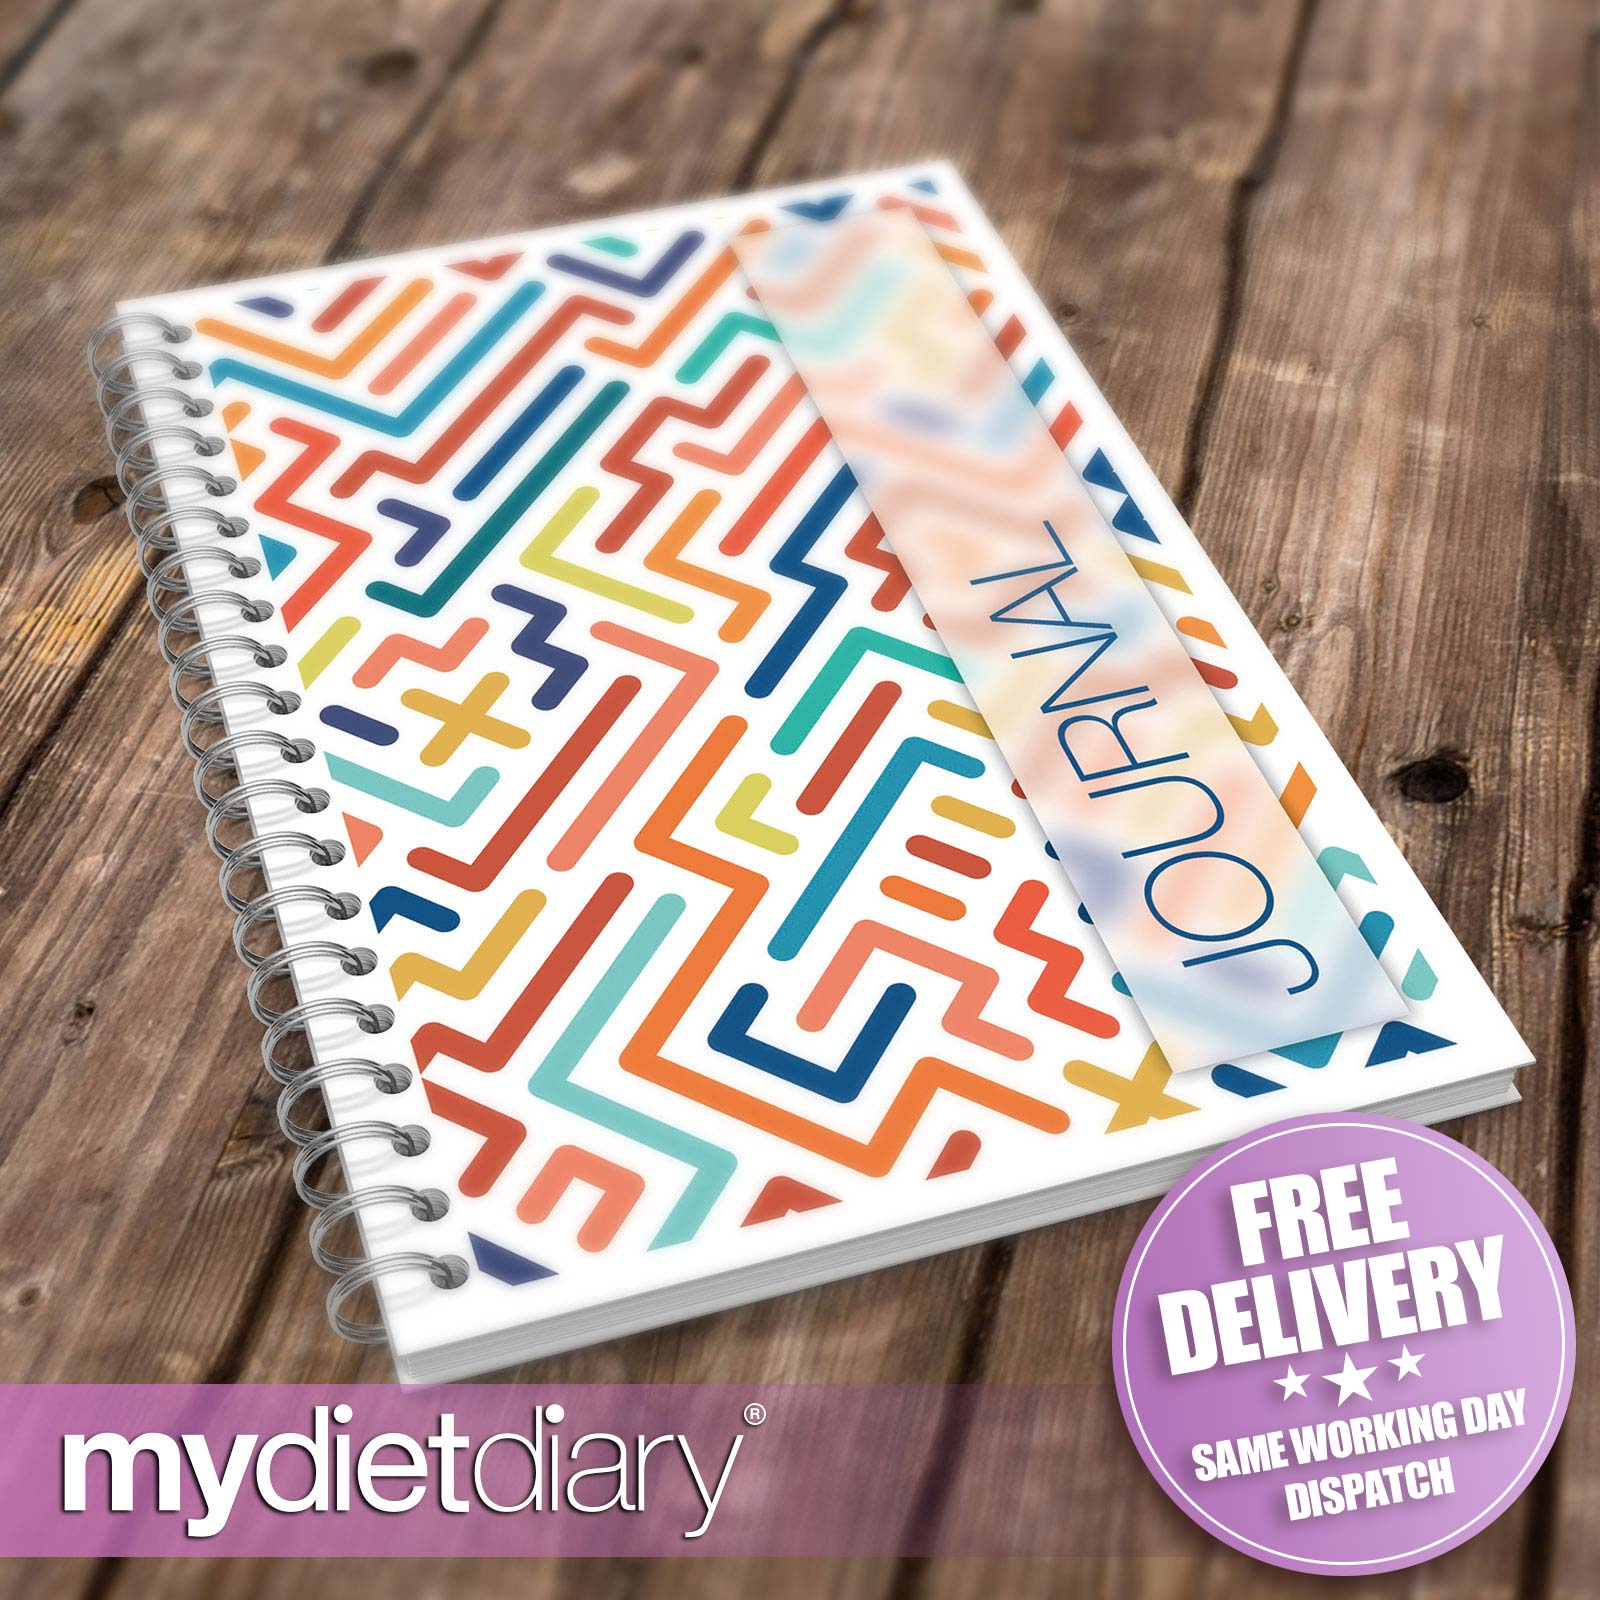 DIARY-WEIGHT-WATCHERS-COMPATIBLE-Maze-W030W-12wk-journal-notebook-slimming